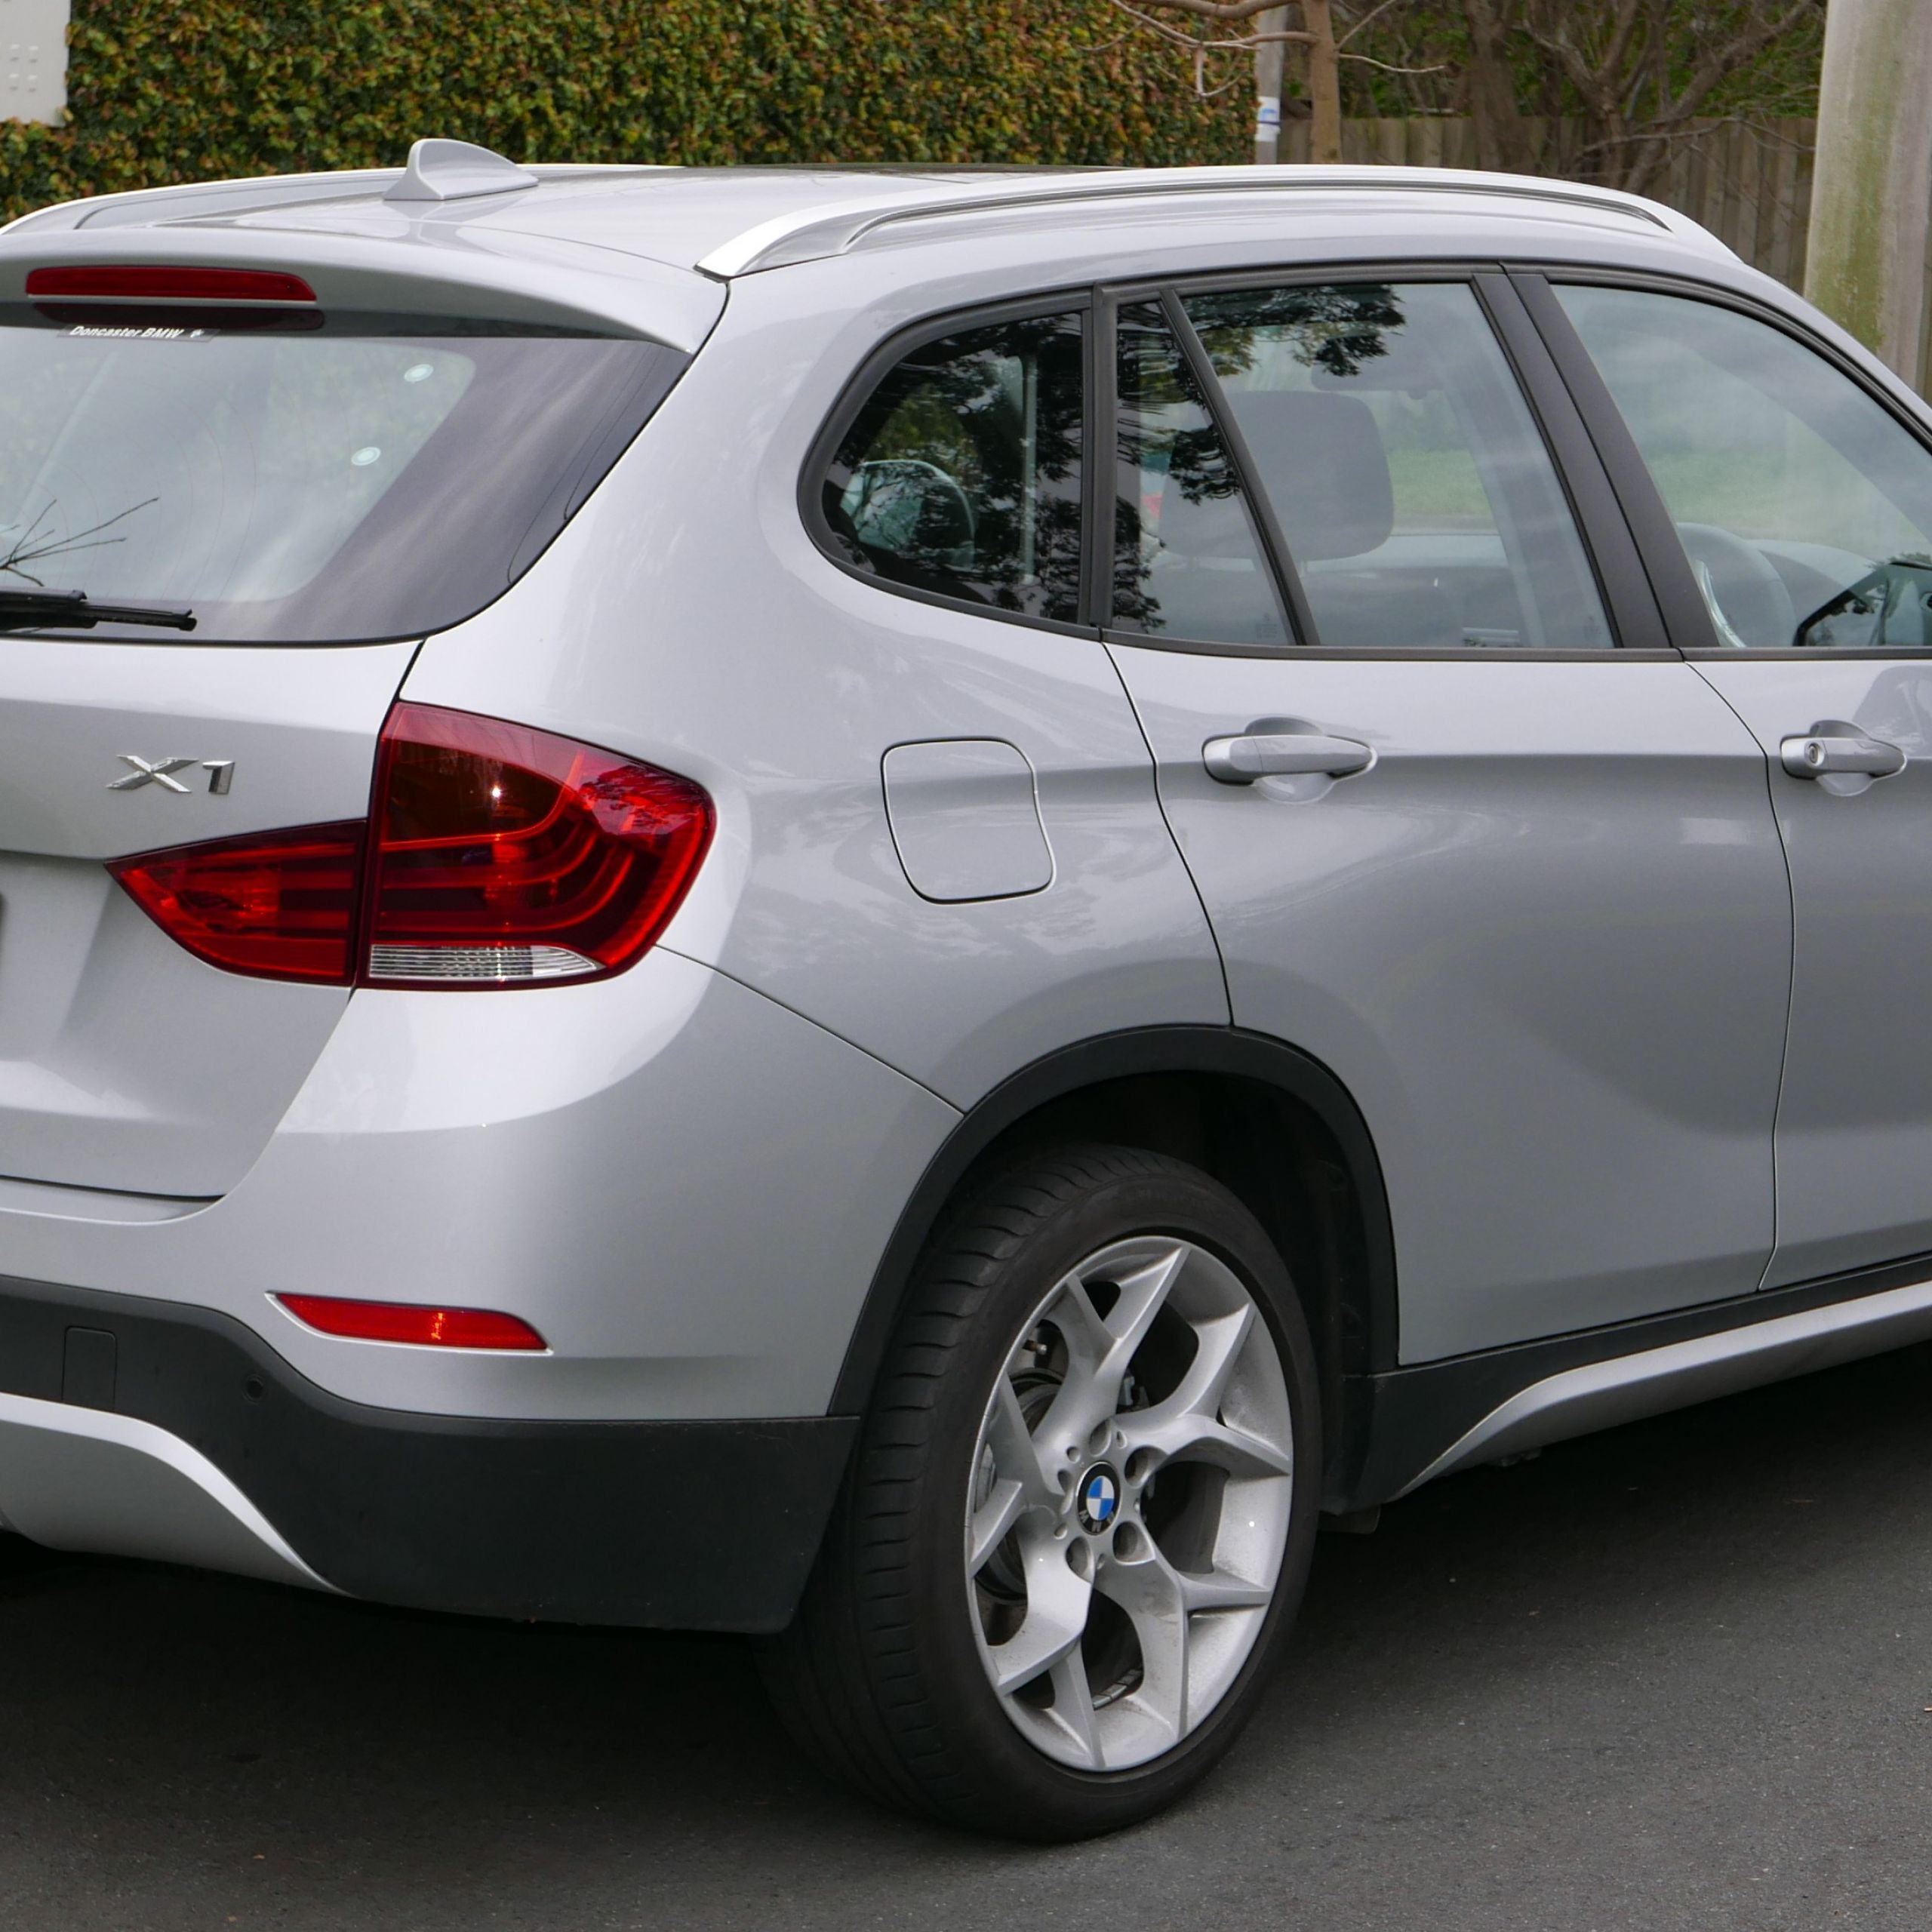 2013 BMW X1 E84 LCI MY13 sDrive20i wagon % 07 09 02